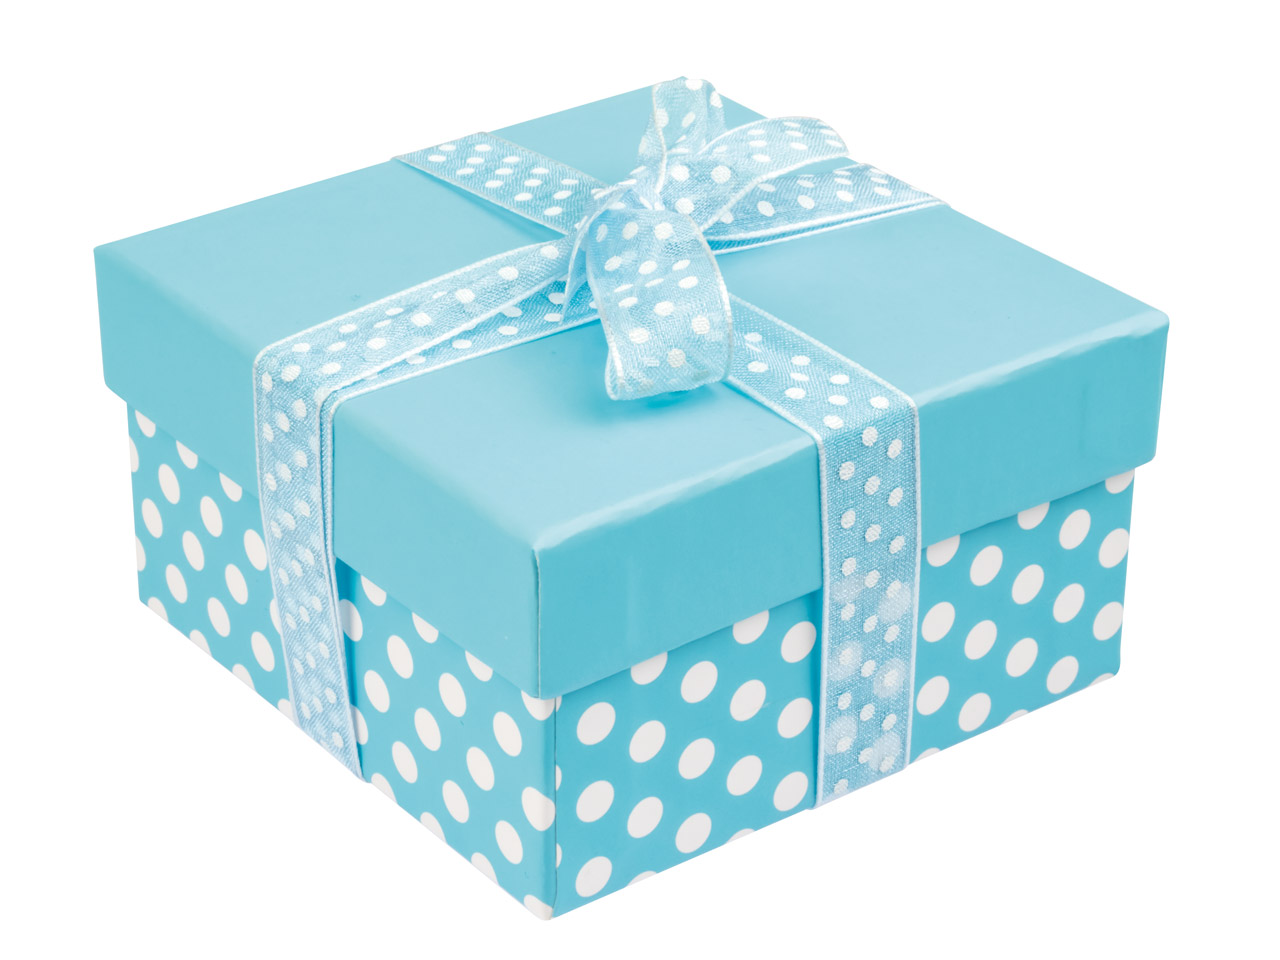 Blue Polka Dot Universal Gift Box